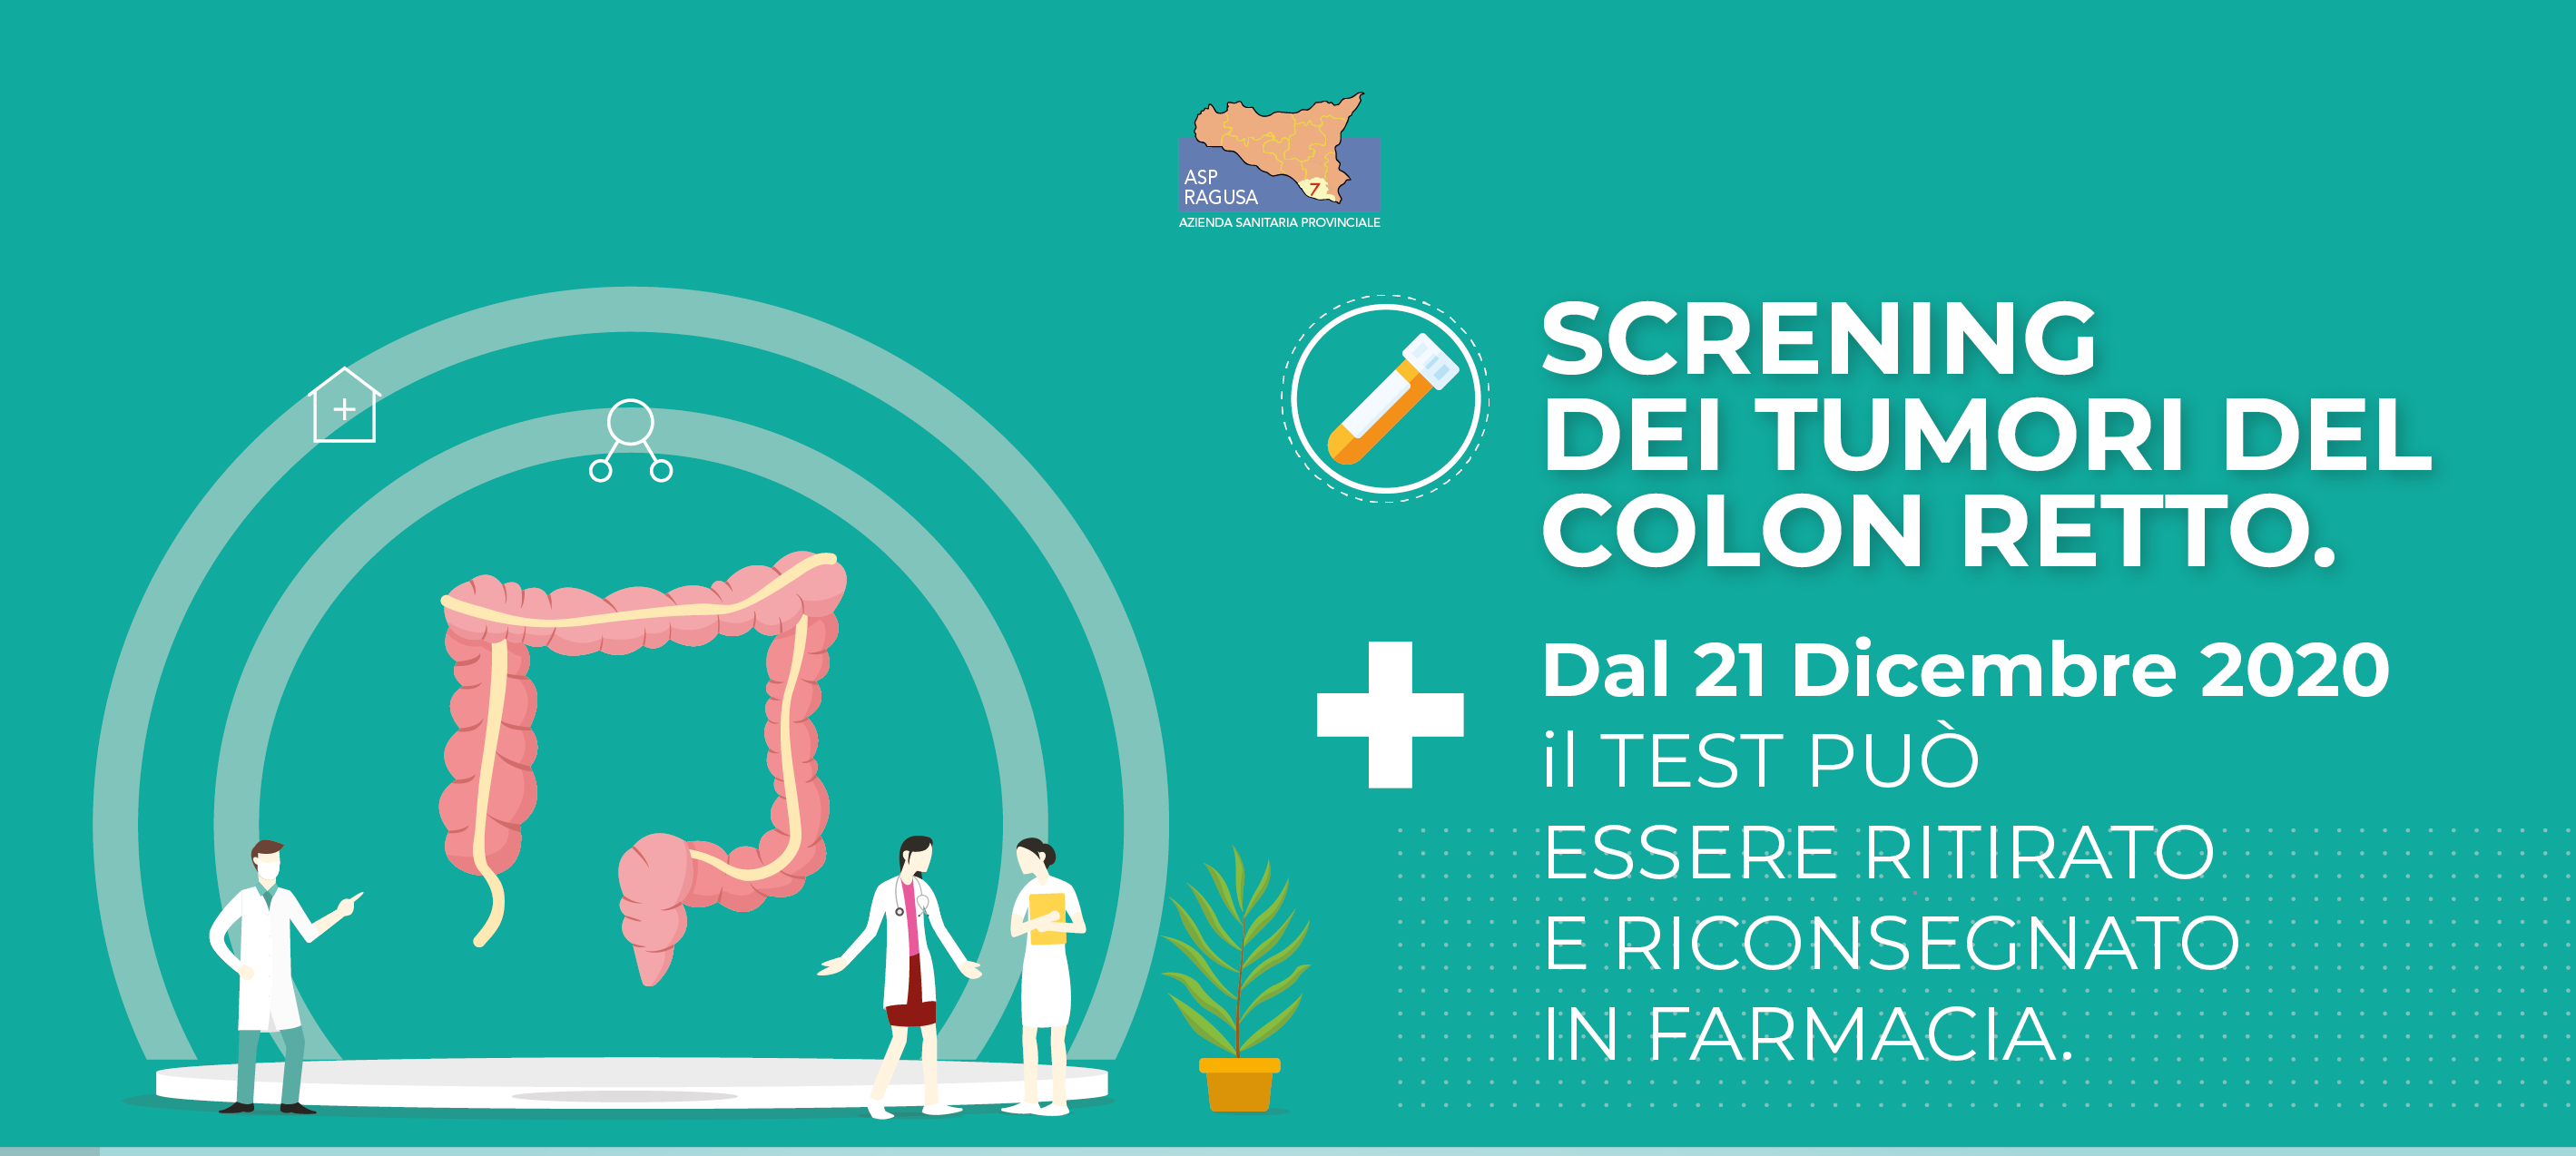 Screening tumore colon retto